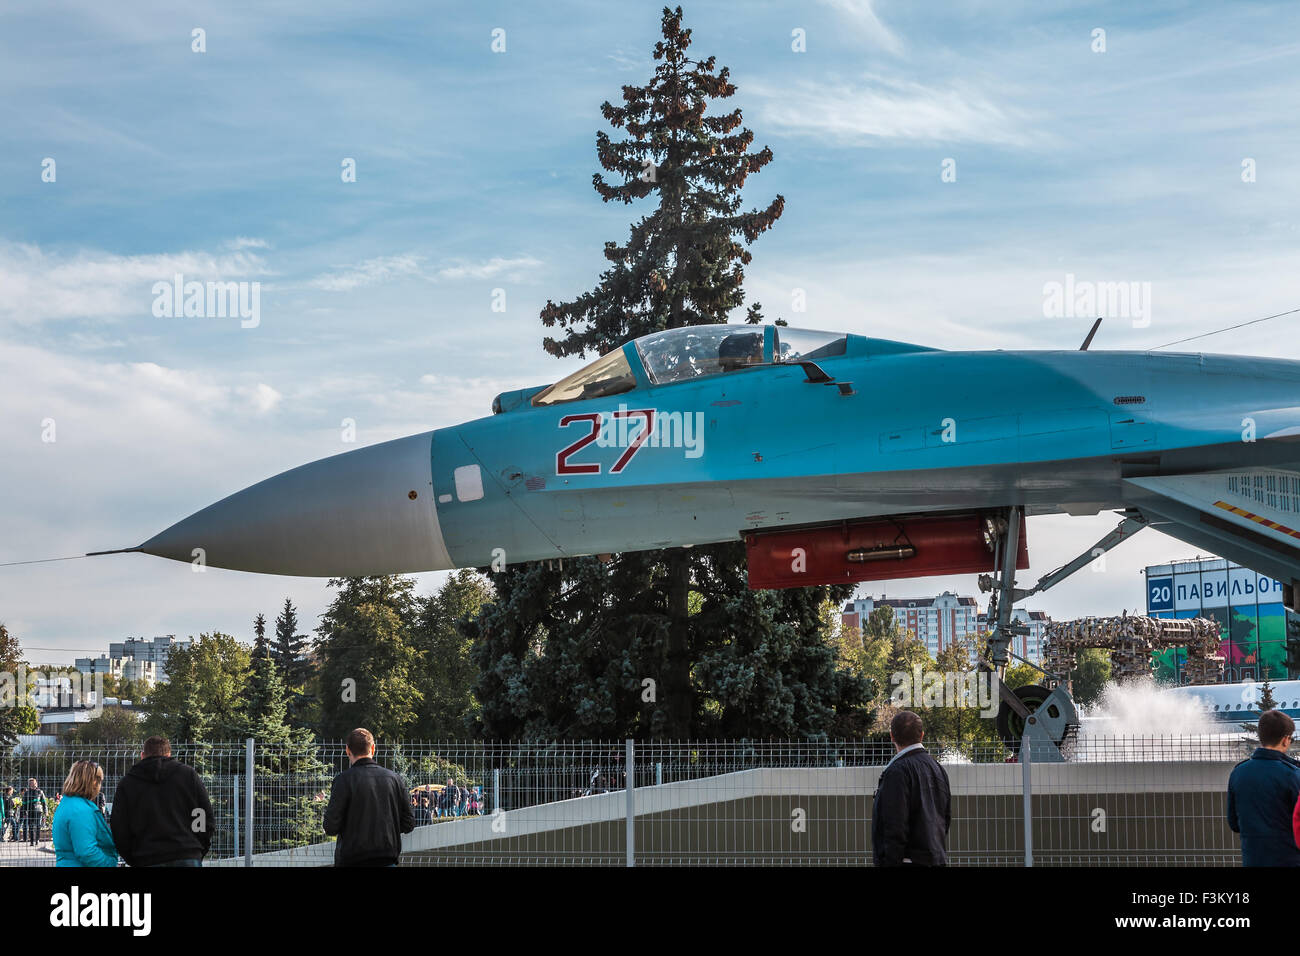 Moscow, Russia - October 5, 2015: Part of the Exhibition Centre VDNH (VVC), Moscow, Russia. The old military plane Stock Photo